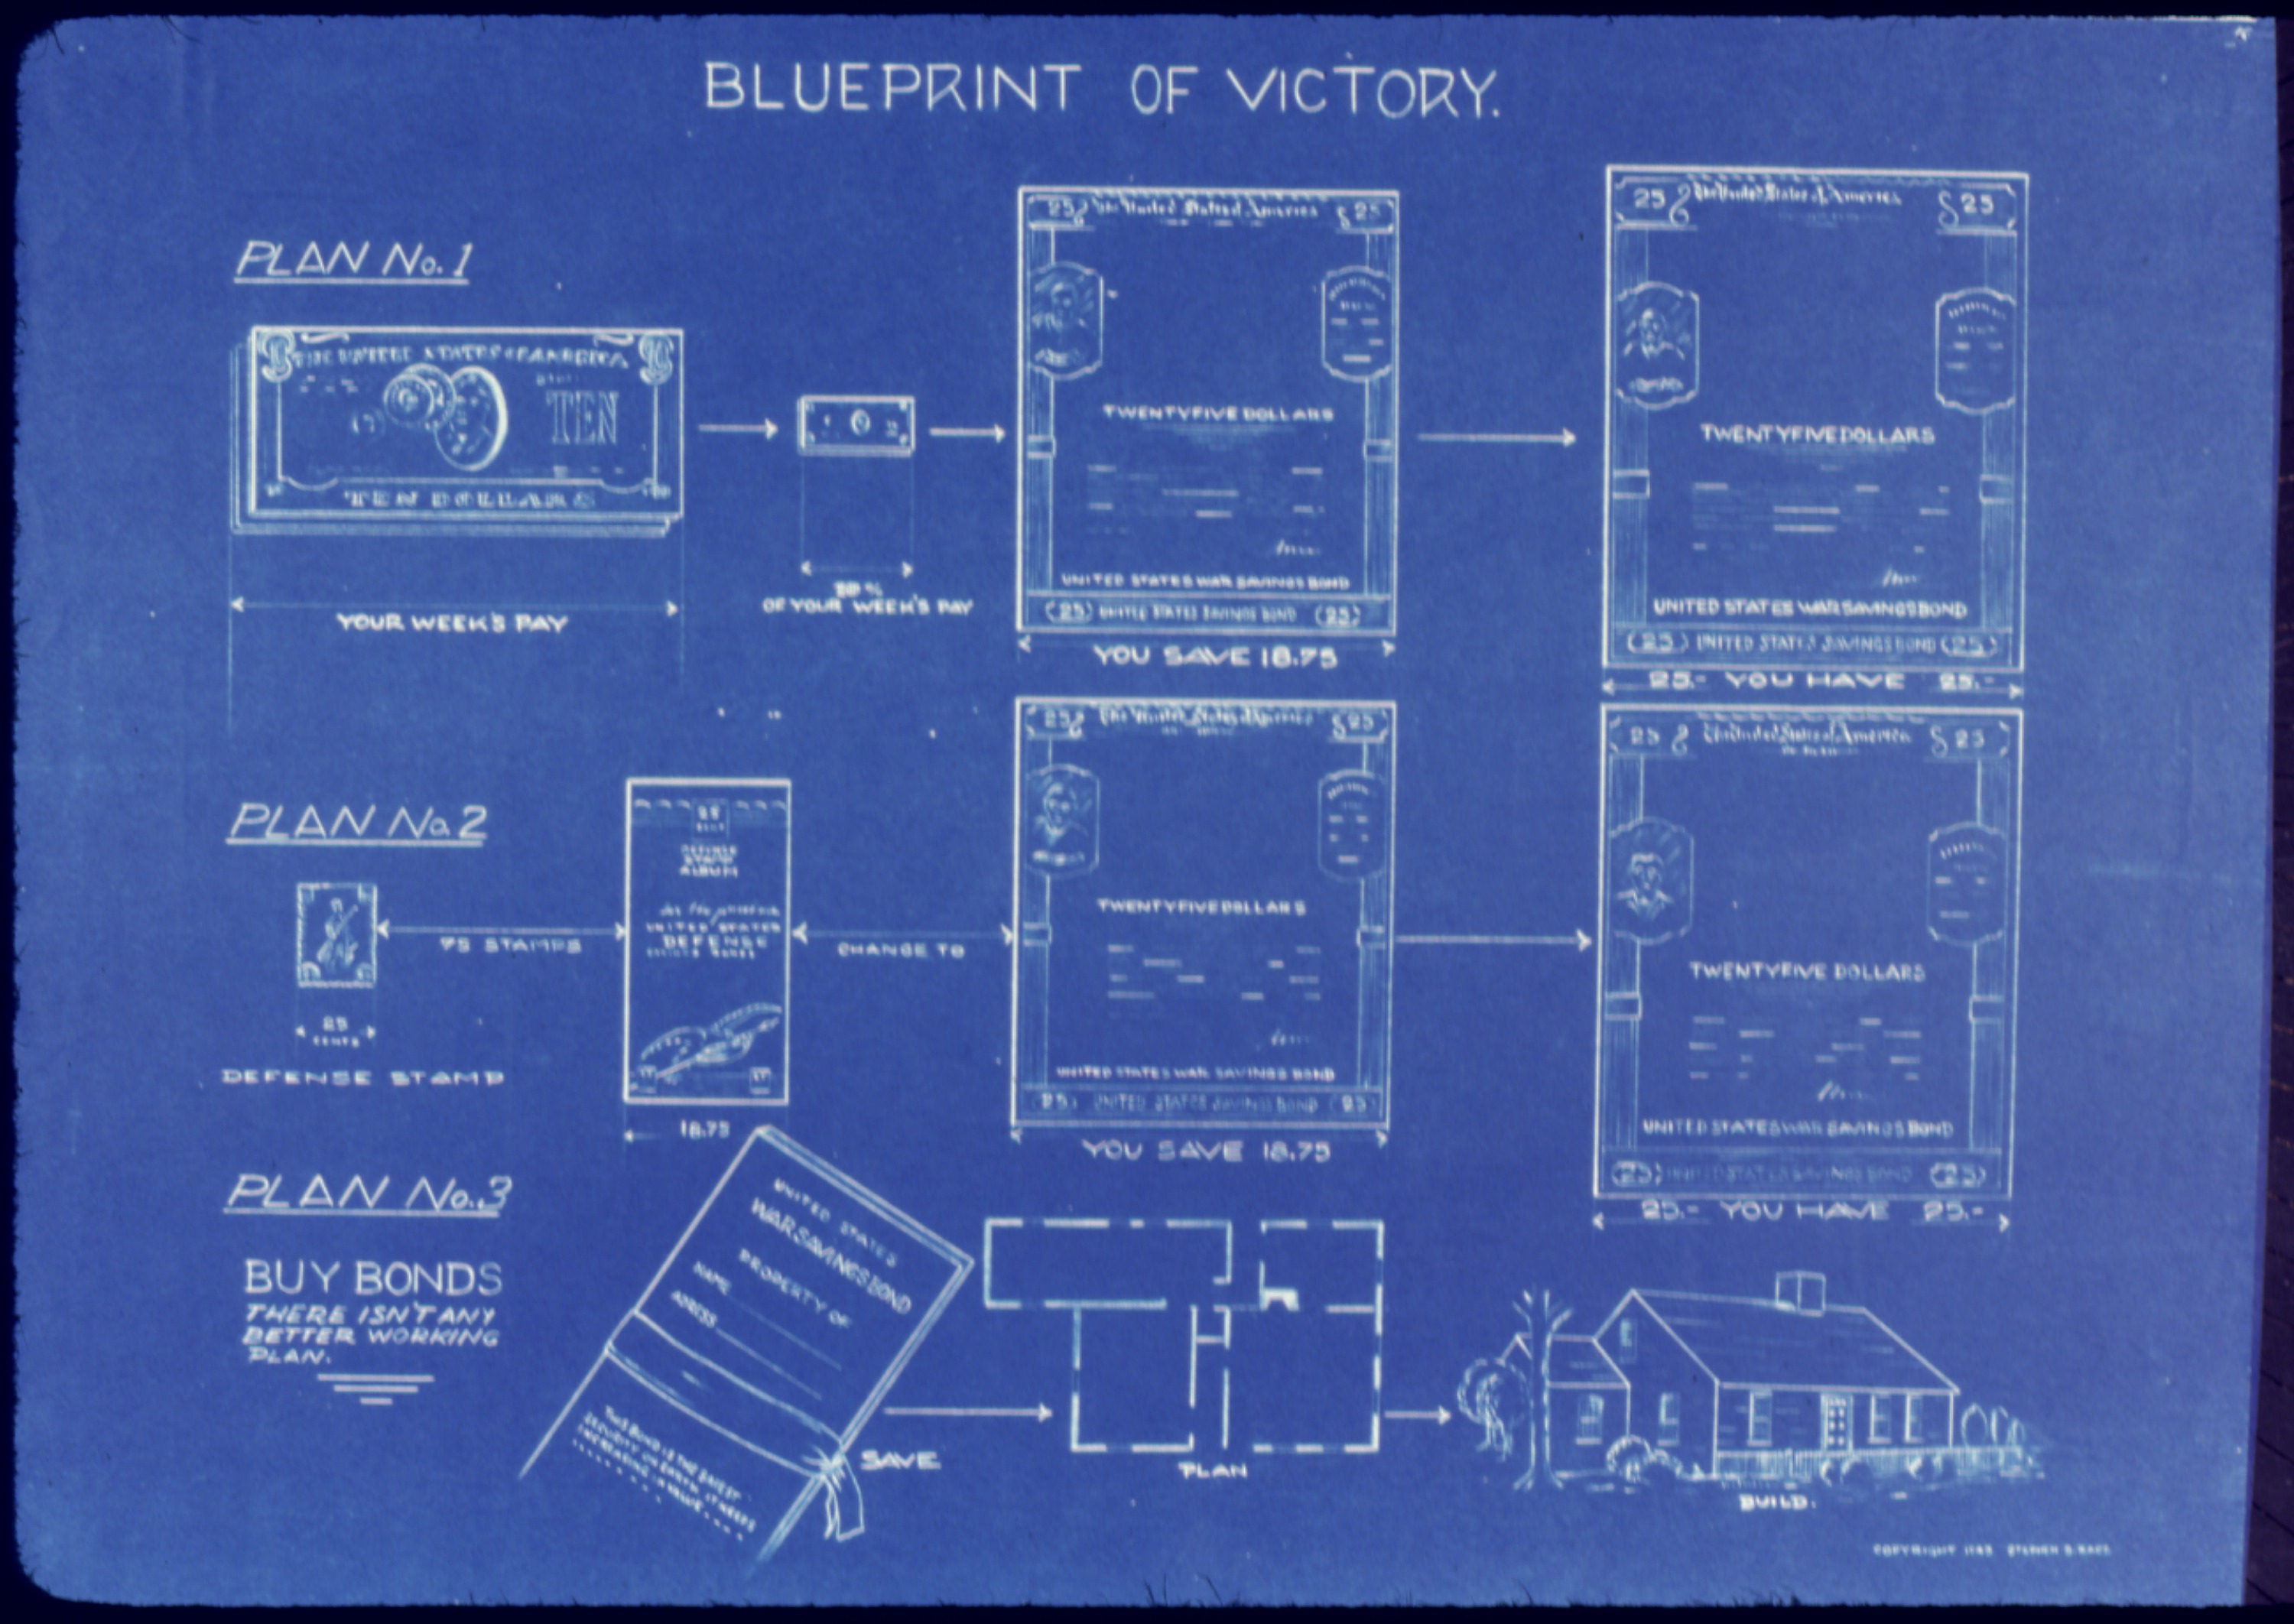 file blueprint of victory nara 534554 jpg wikimedia commons file blueprint of victory nara 534554 jpg